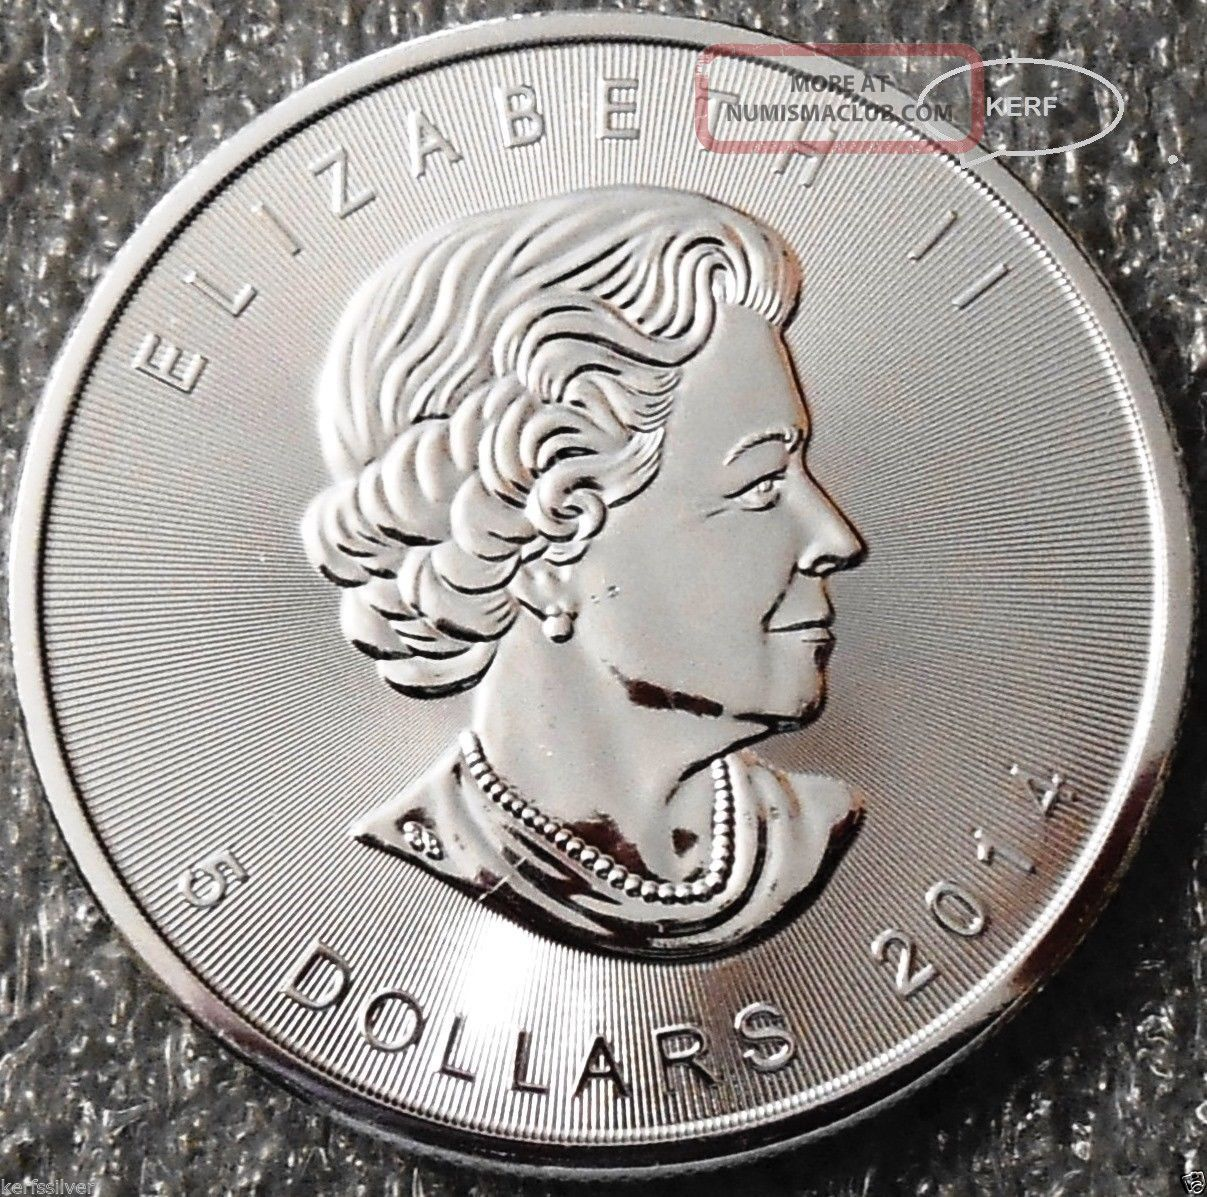 2014 Canadian Maple Leaf Silver Coin Bu 1 Oz 9999 Fine